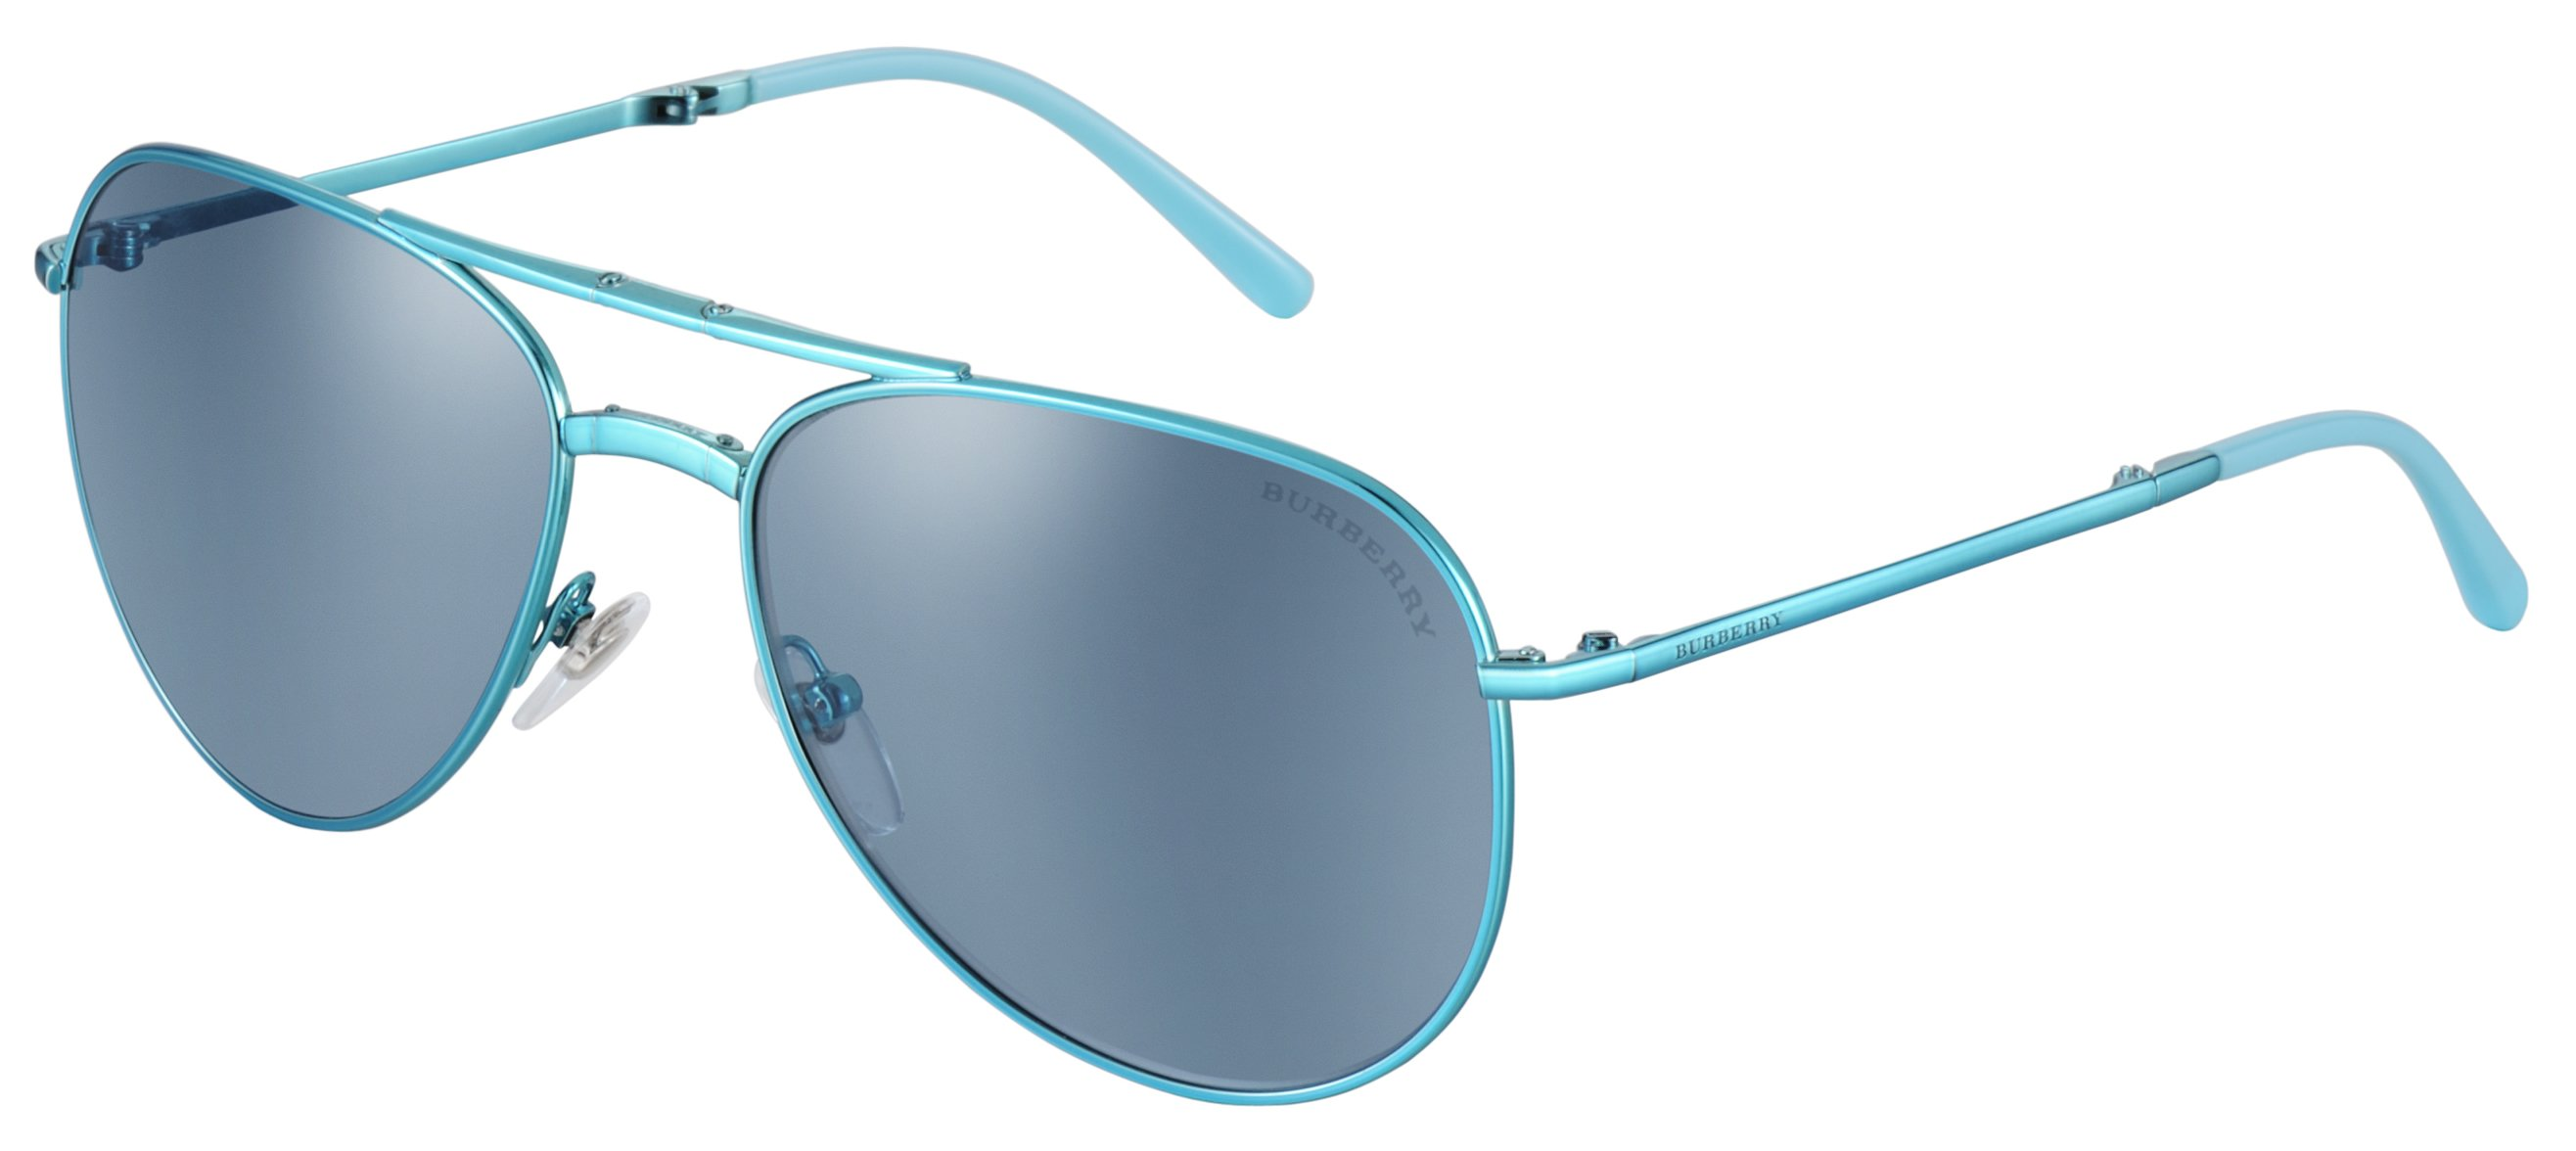 burberry blue sunglasses j3bx  burberry blue sunglasses